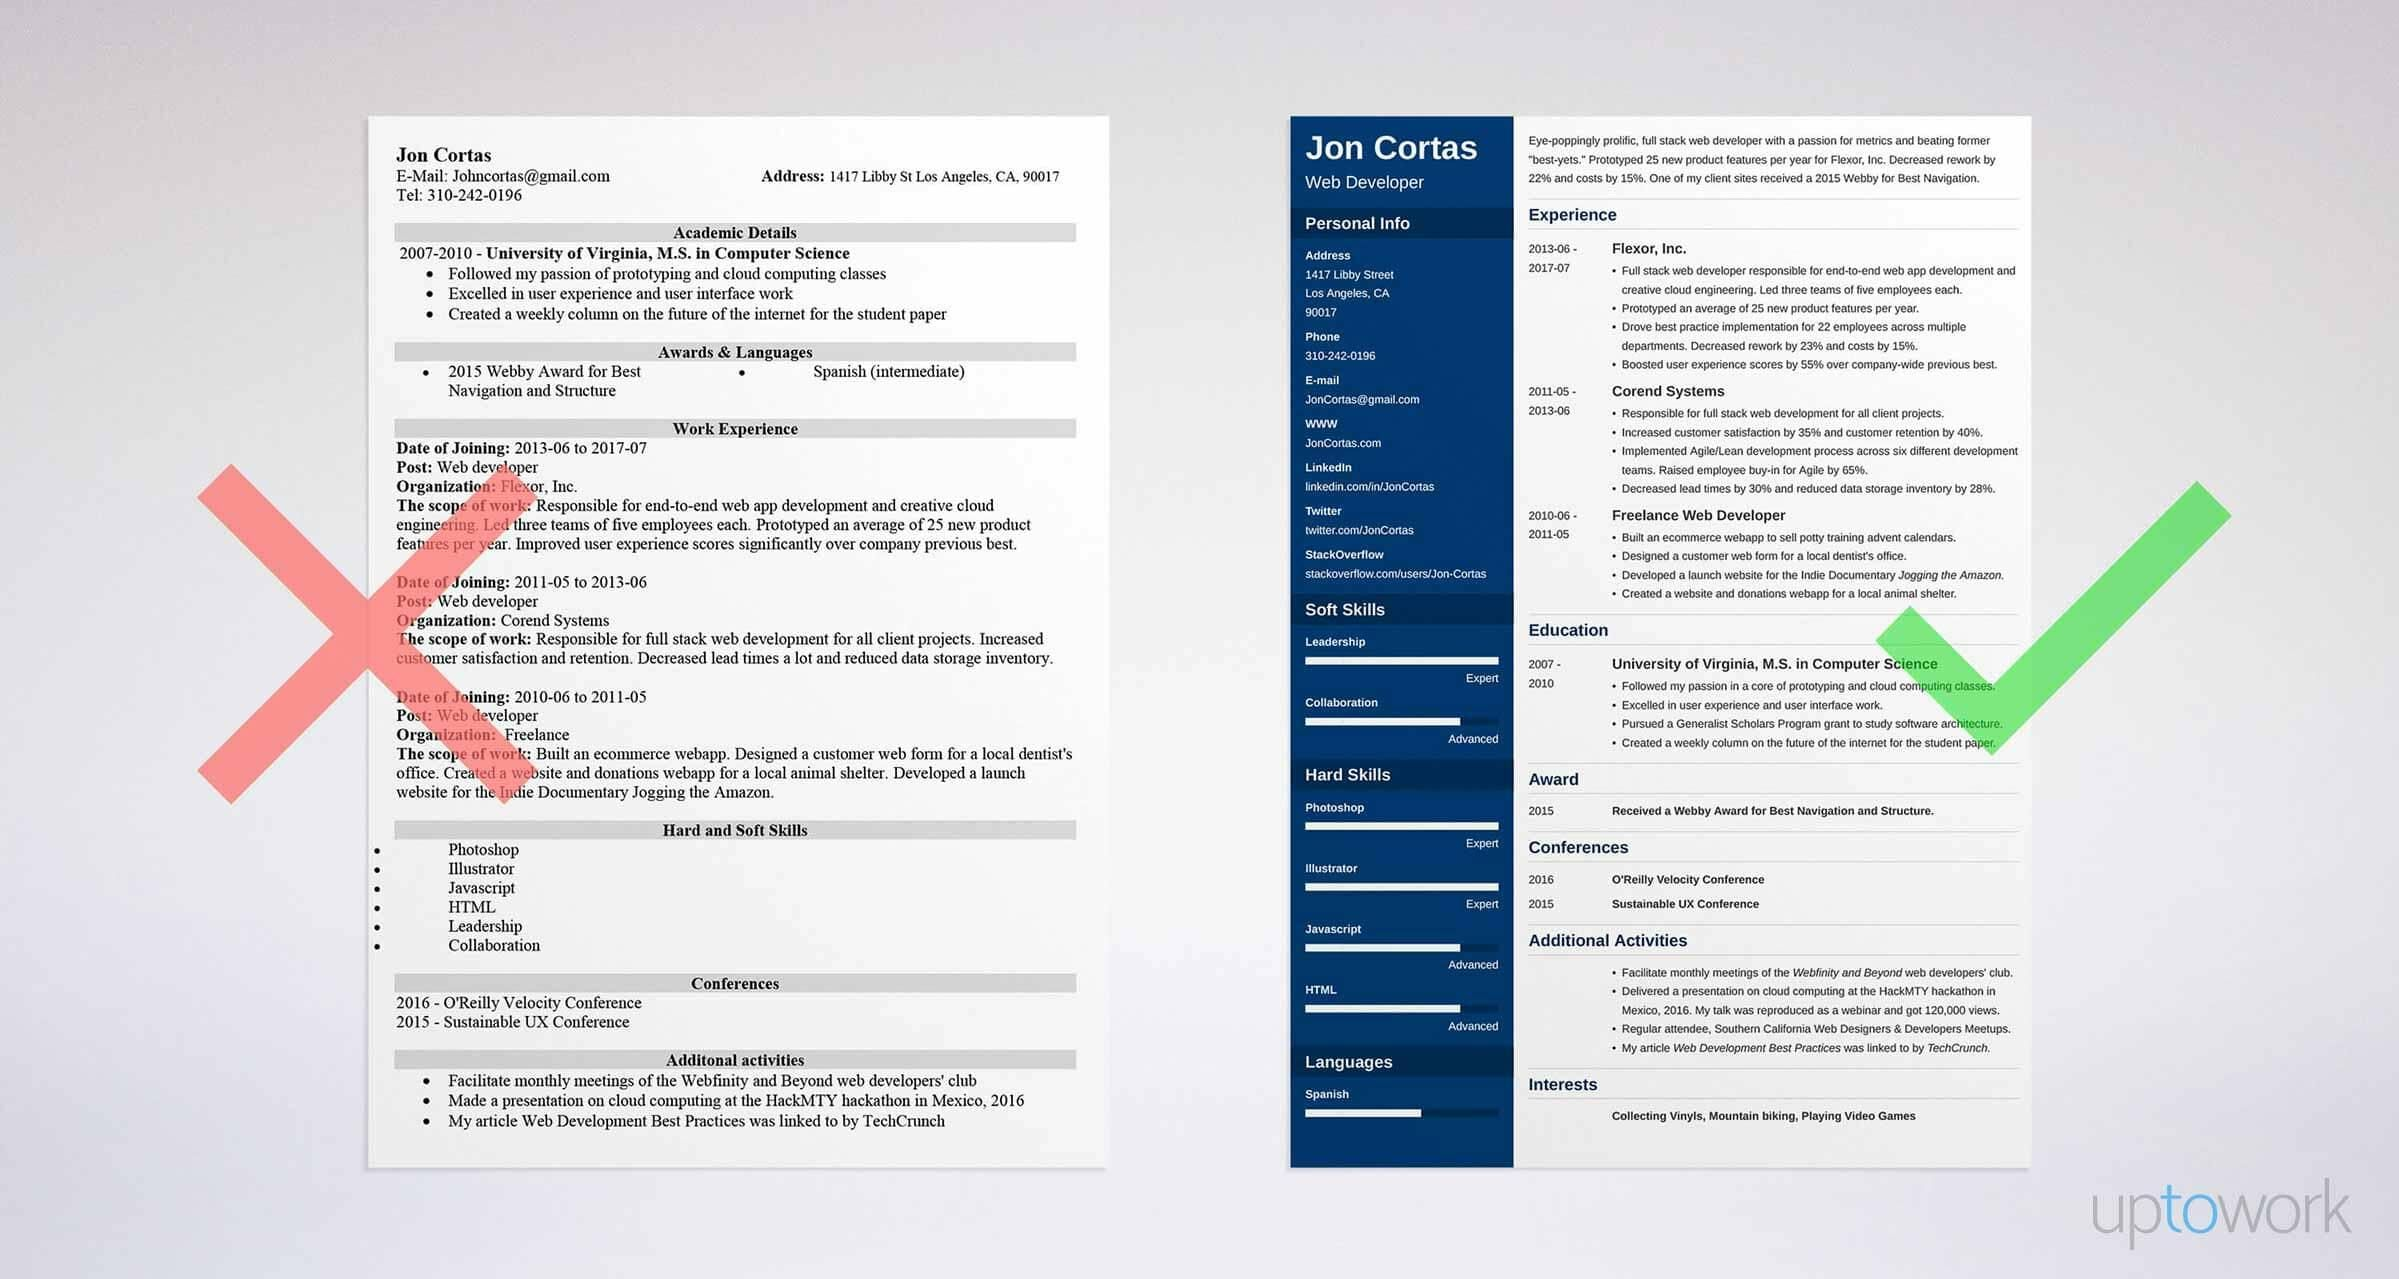 Resume Examples 2013 Bad And Good Resume Examples Comparison  Zentangle  Pinterest .